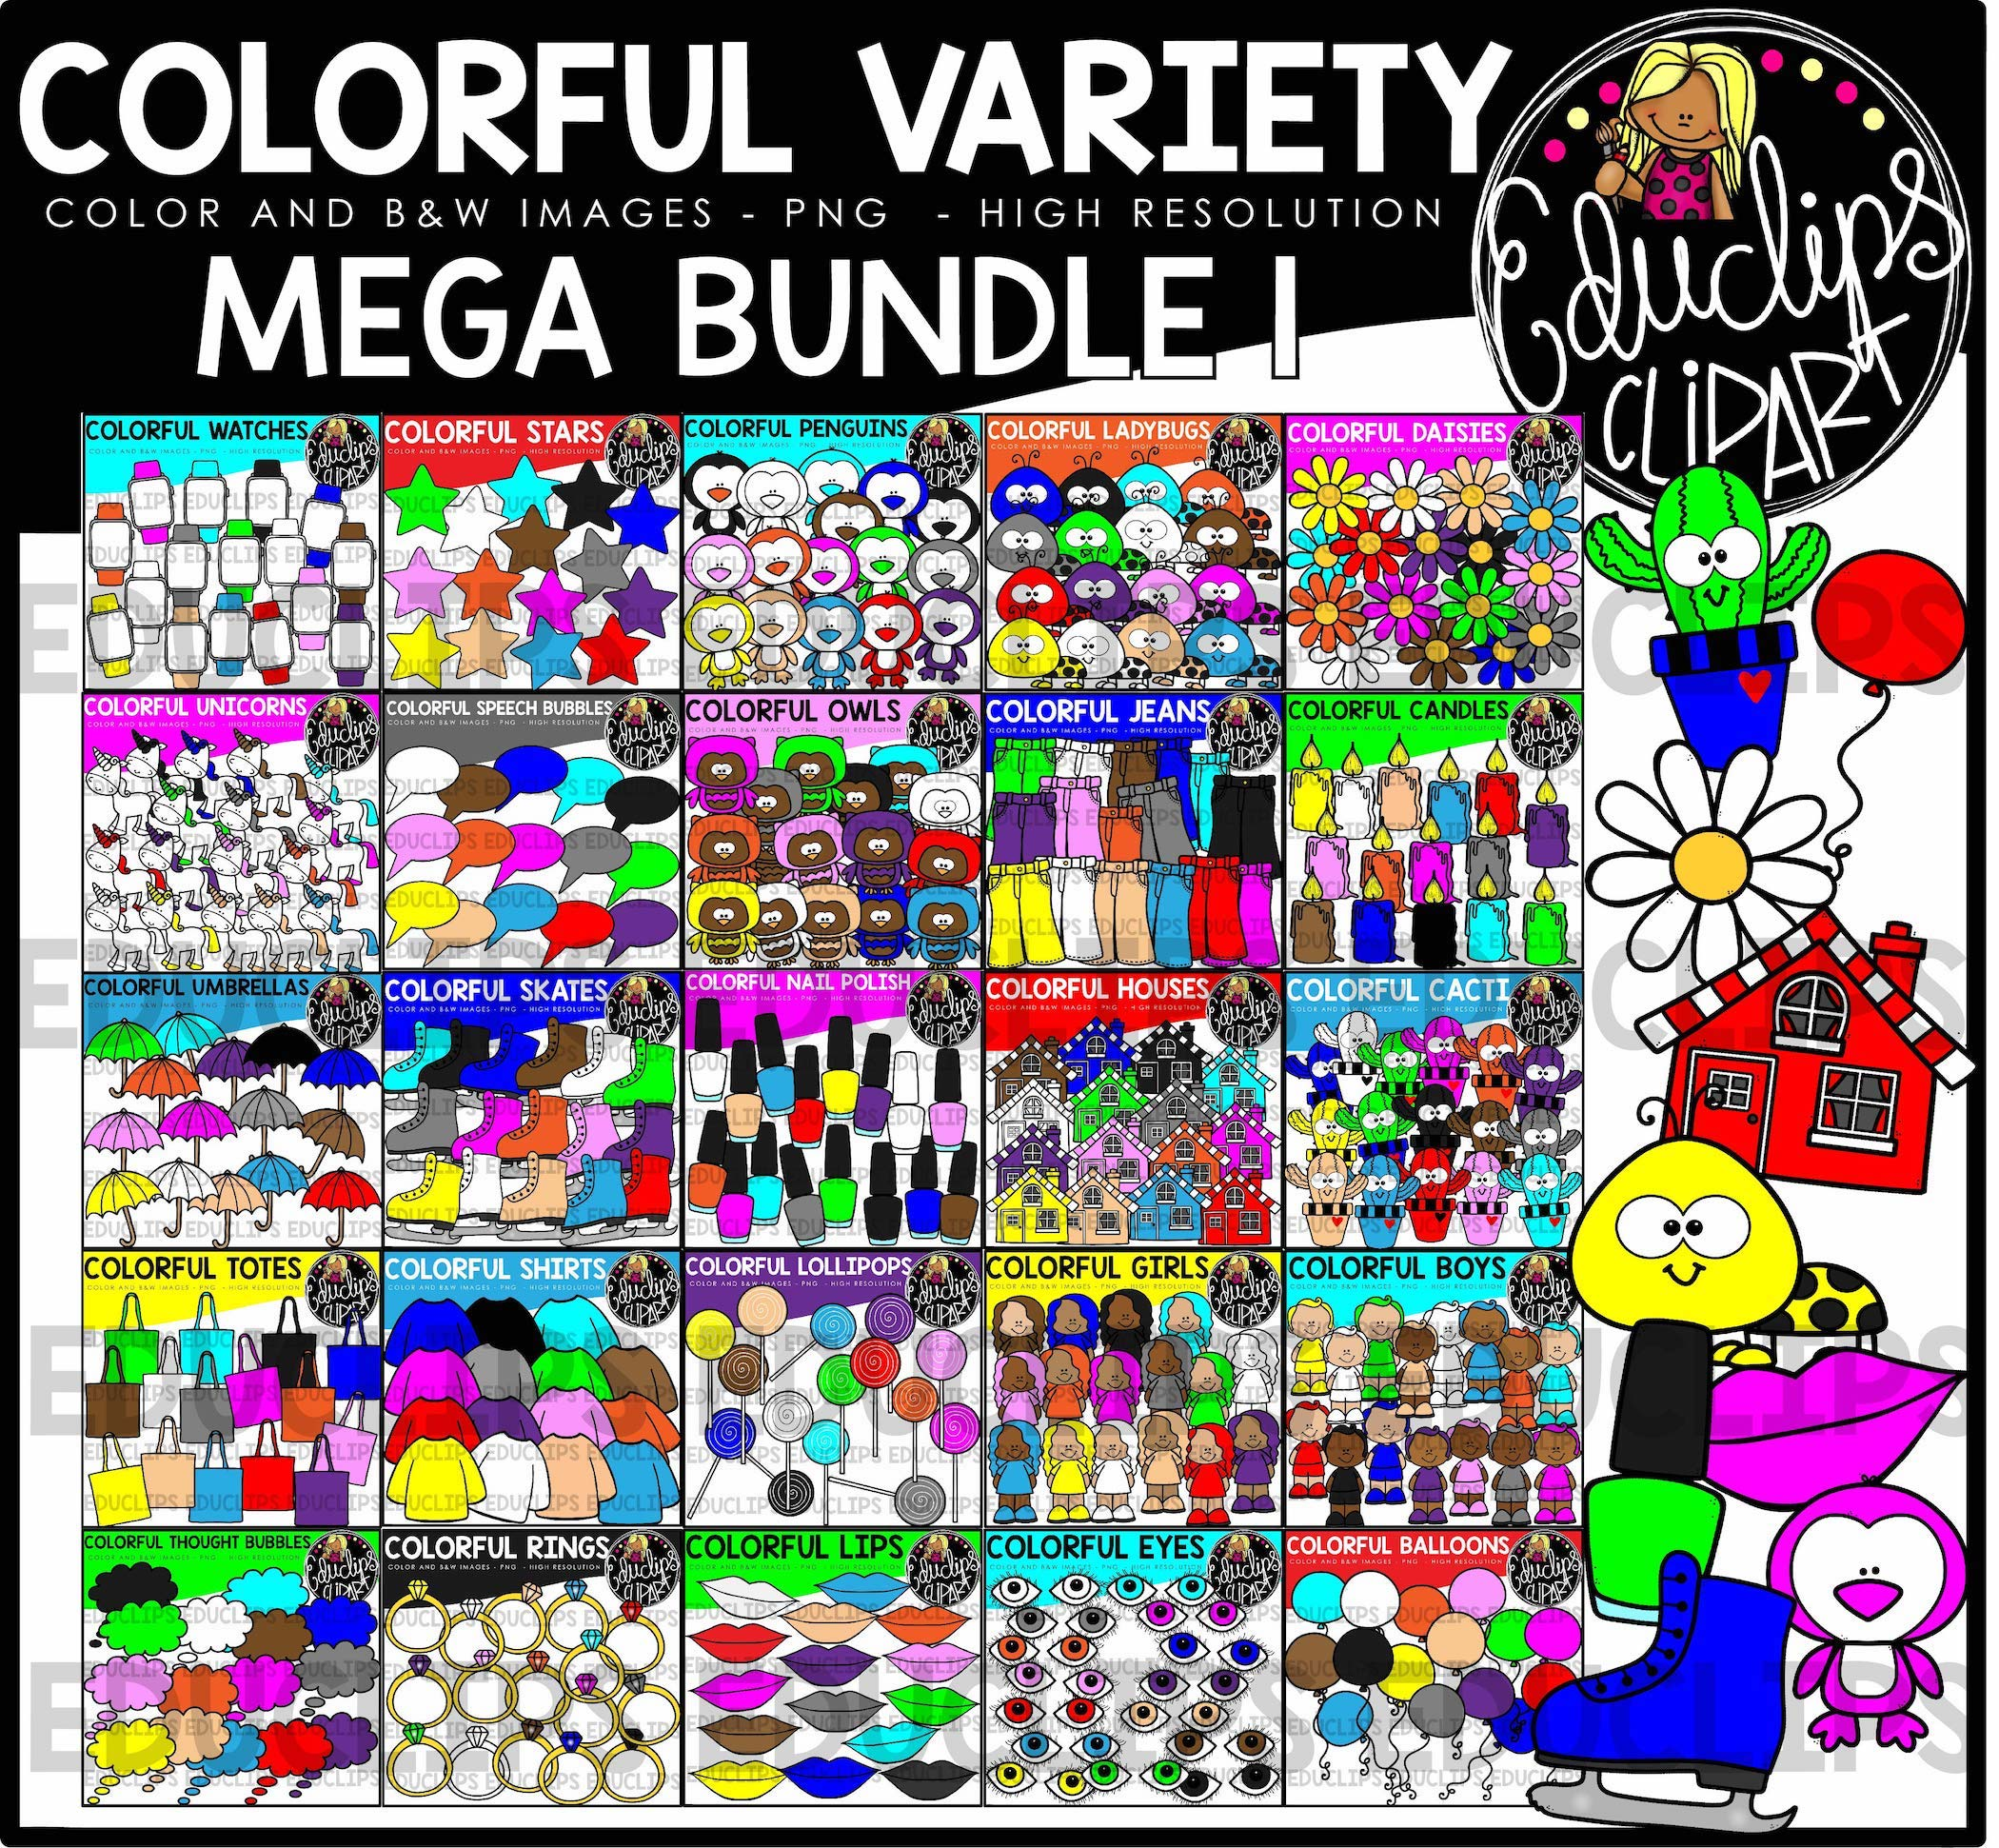 colorful variety clip art mega bundle color and bampw